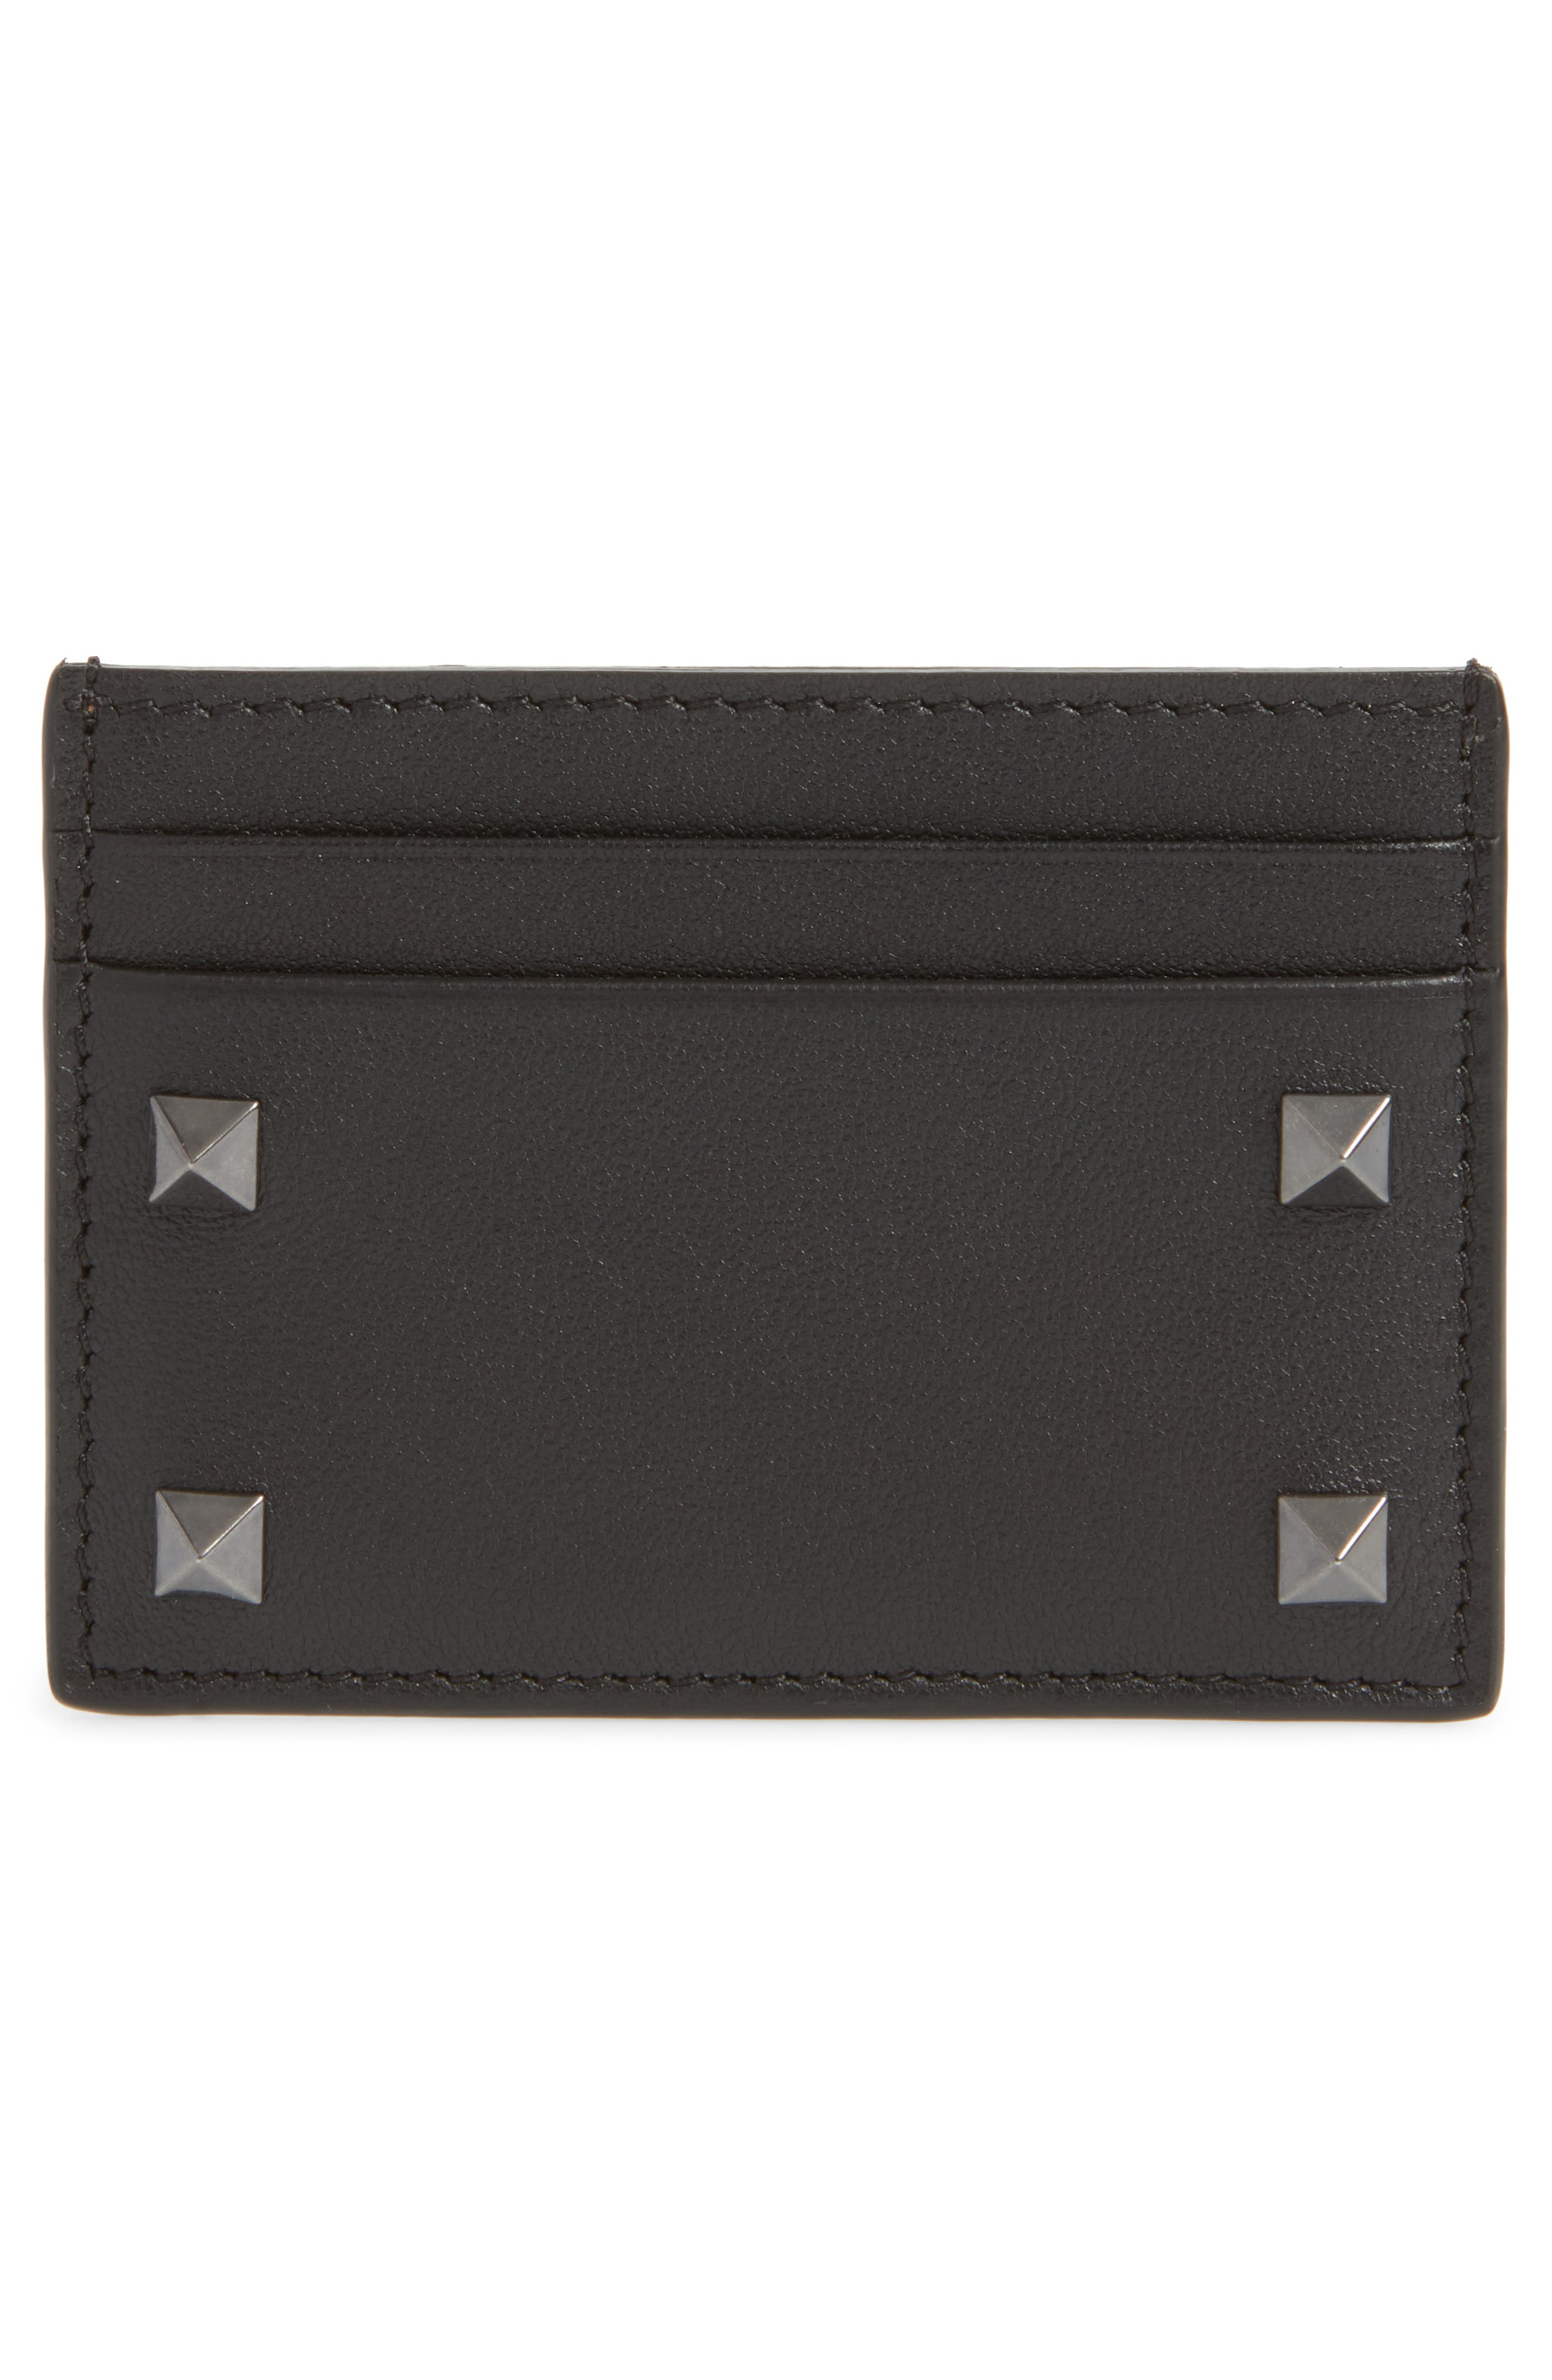 GARAVANI Stud Leather Card Case,                             Main thumbnail 1, color,                             BLACK